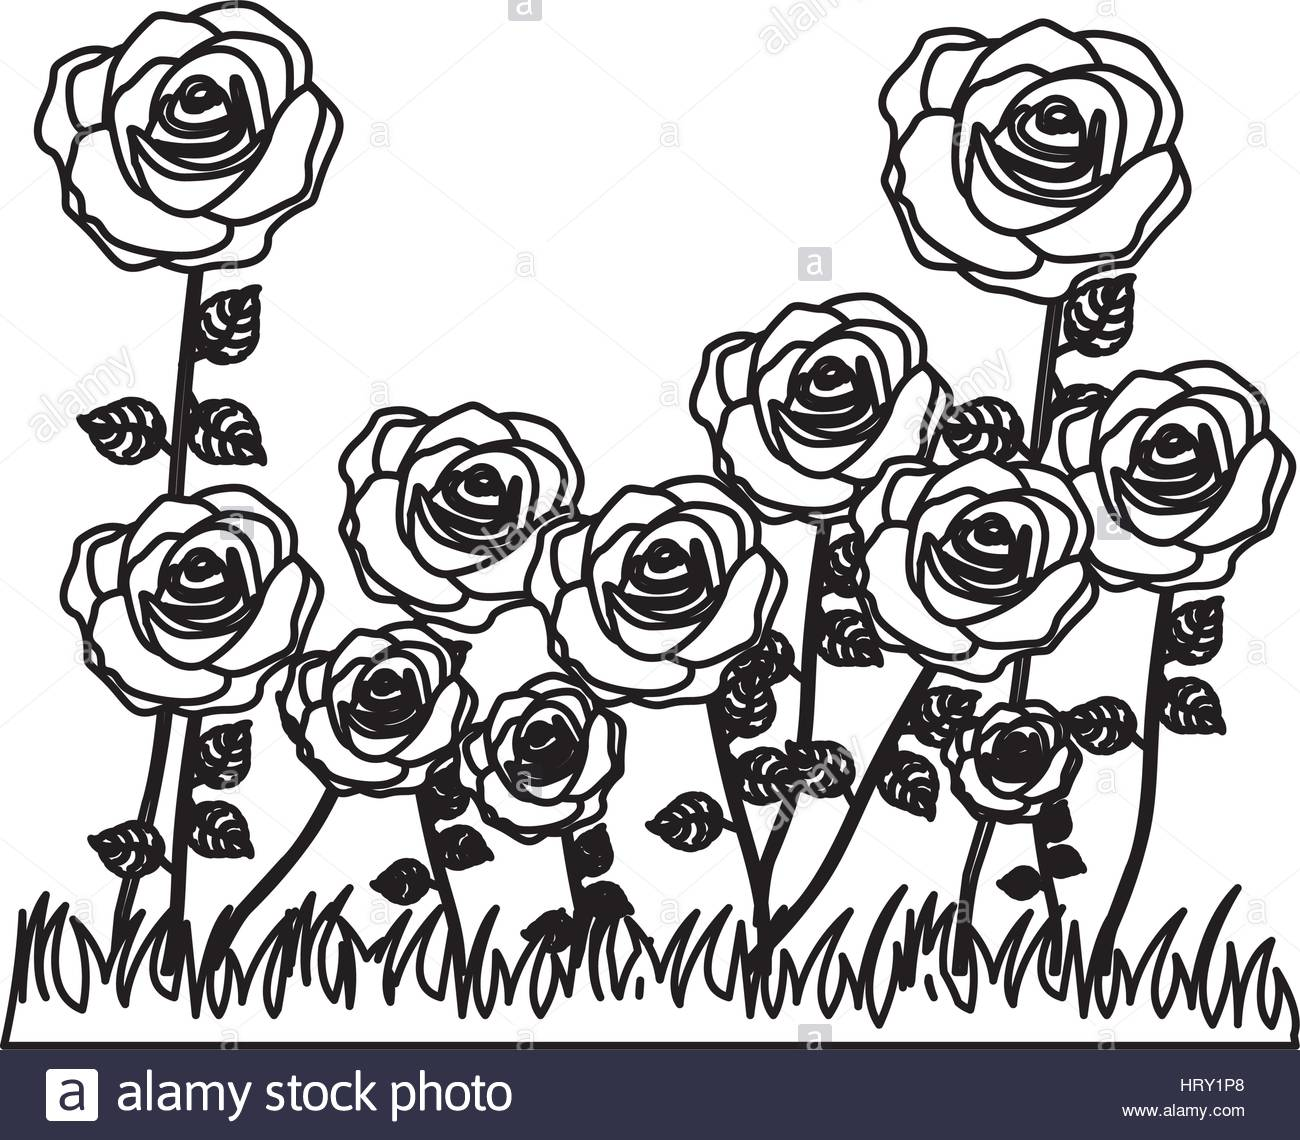 1300x1140 Silhouette Rose Bush In Pasture Floral Design Stock Vector Art